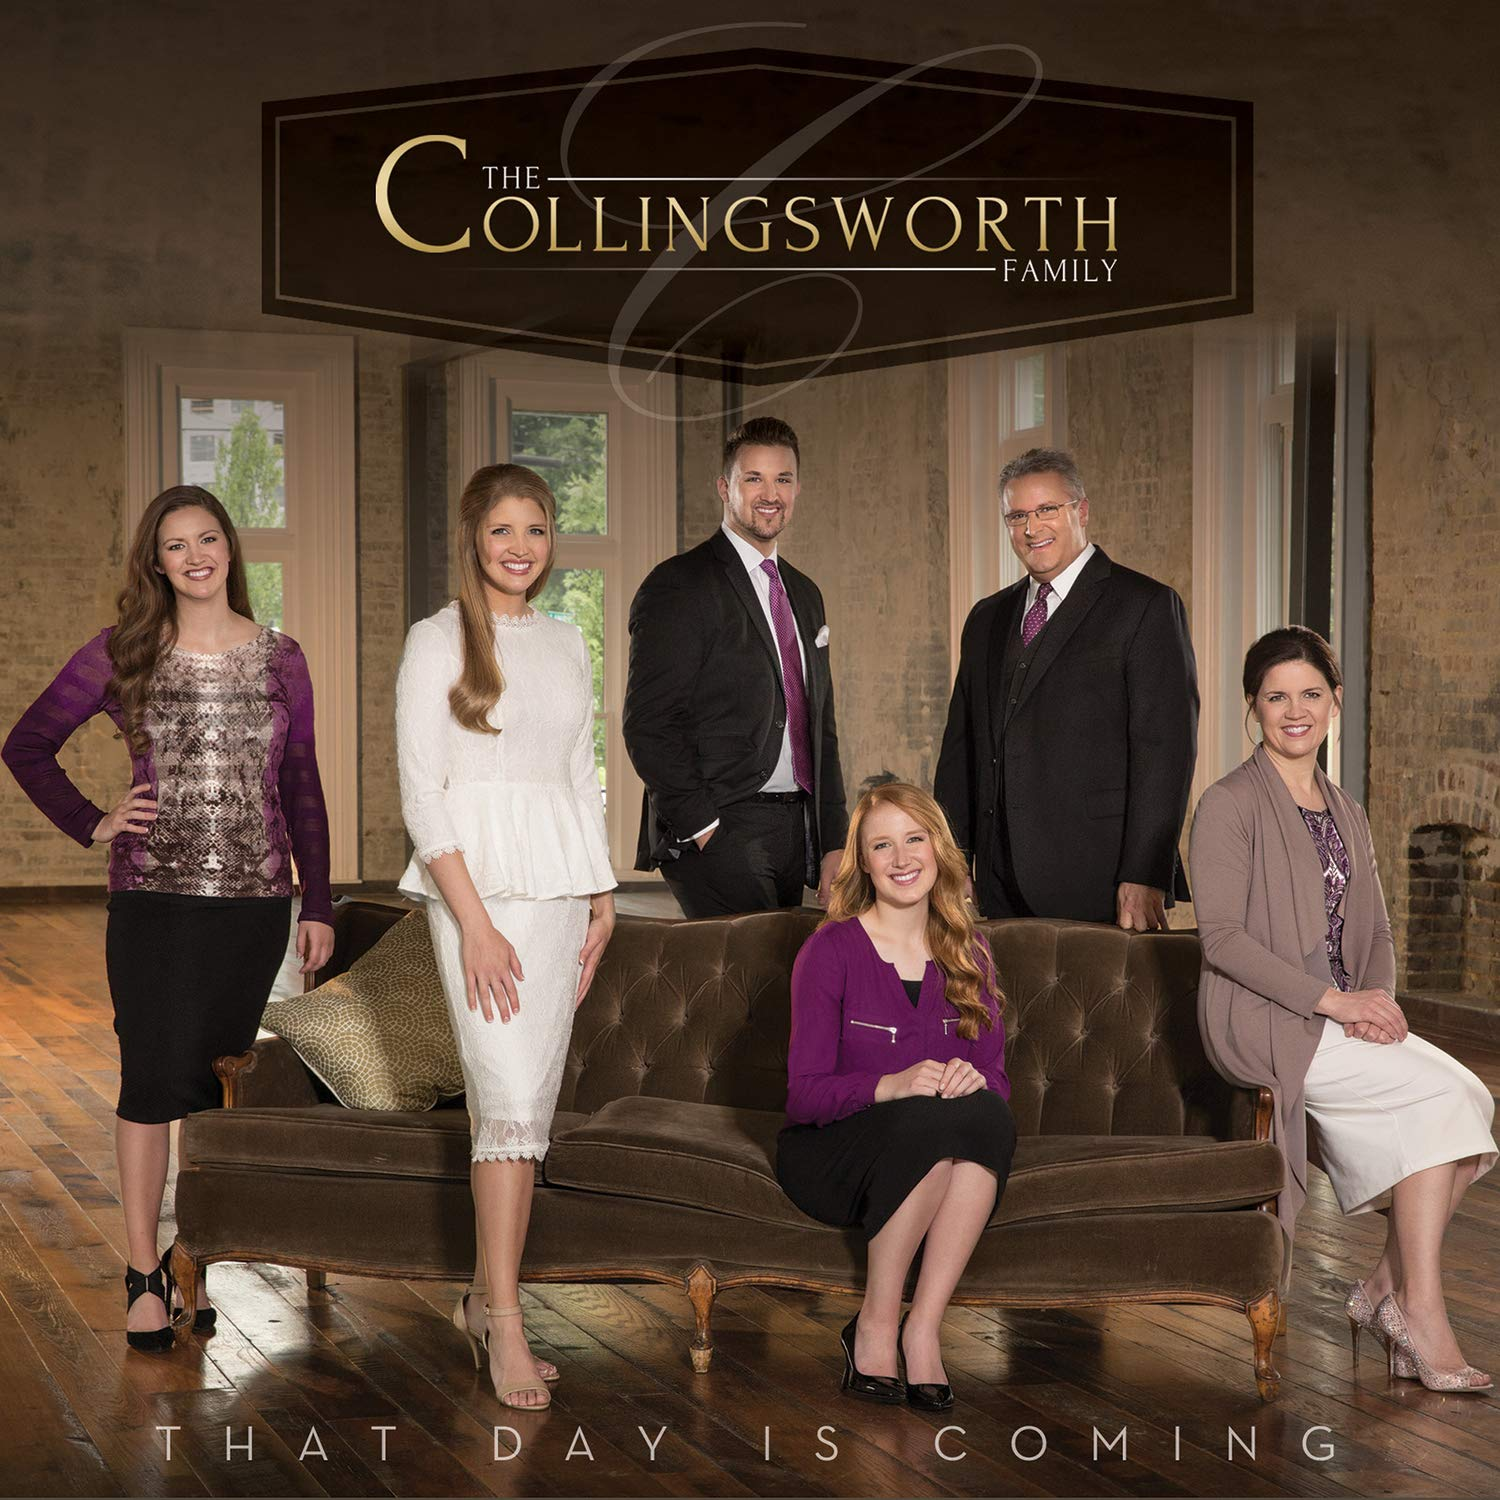 Art for What the Bible Says by COLLINGSWORTH FAMILY